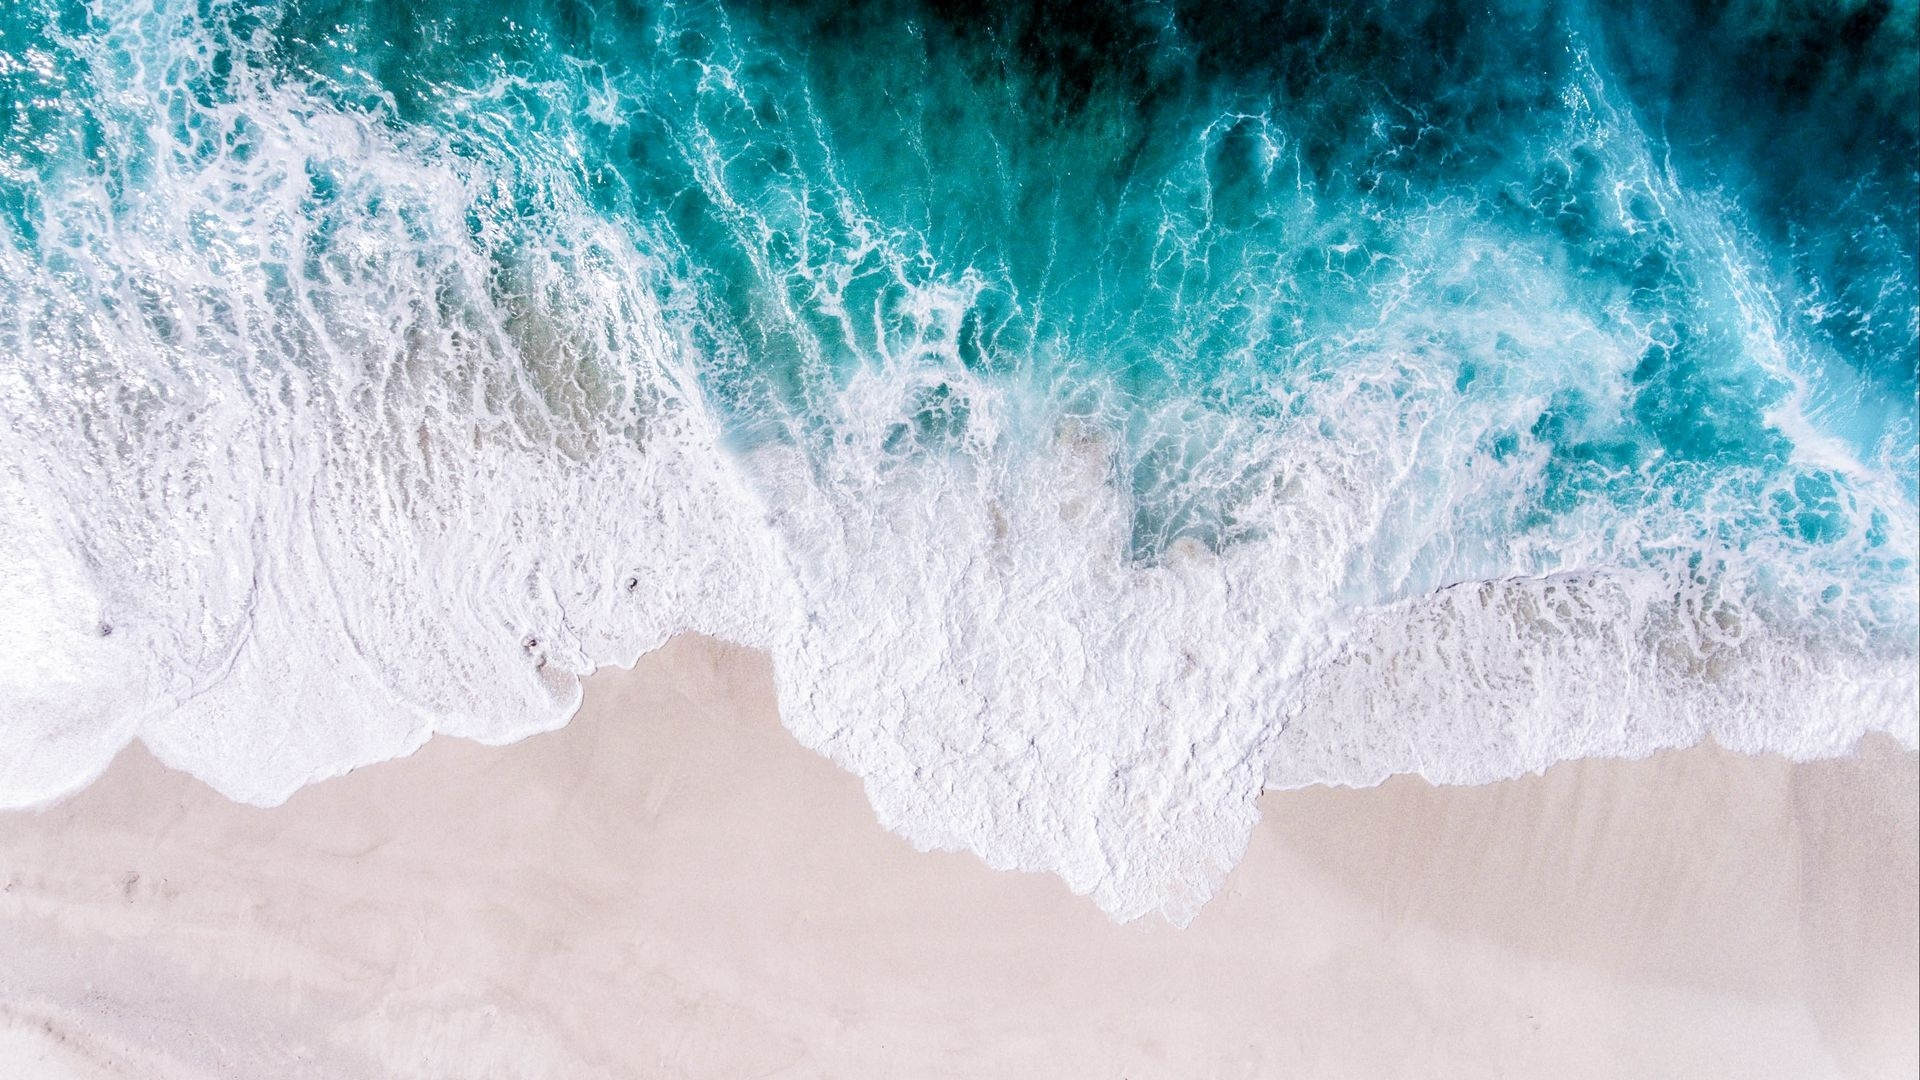 Sea and Sand From Above 1080p wallpaper